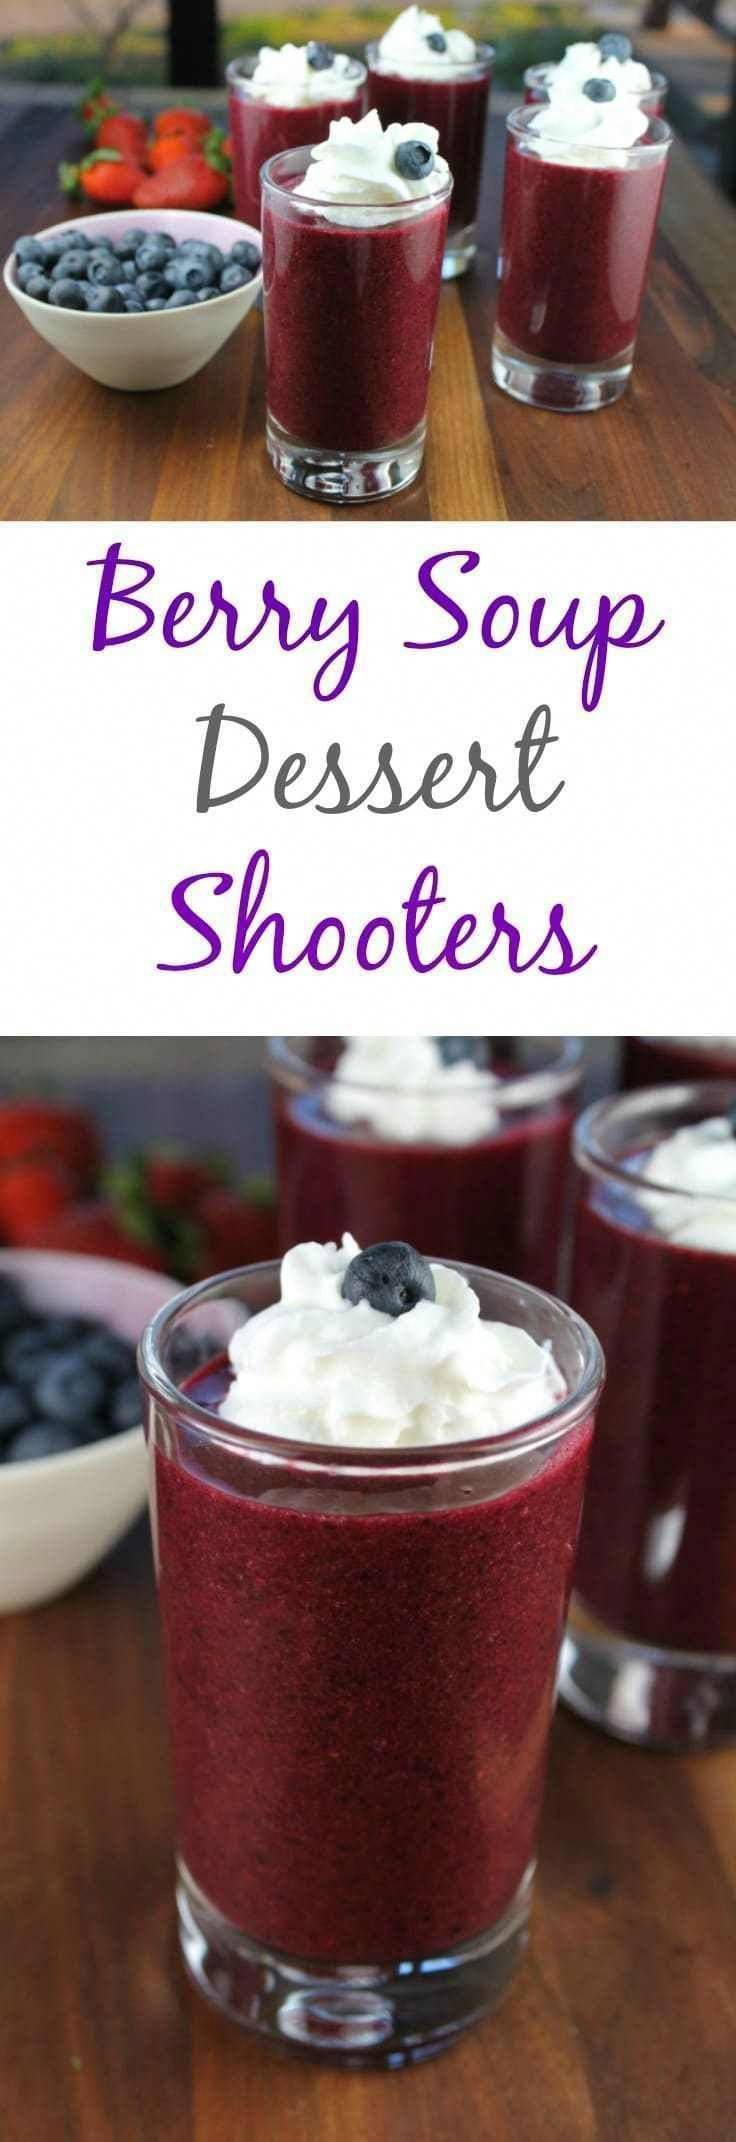 Dessert Shooters Recipes Easy - Dessert Shooters Recipes #dessertshooters